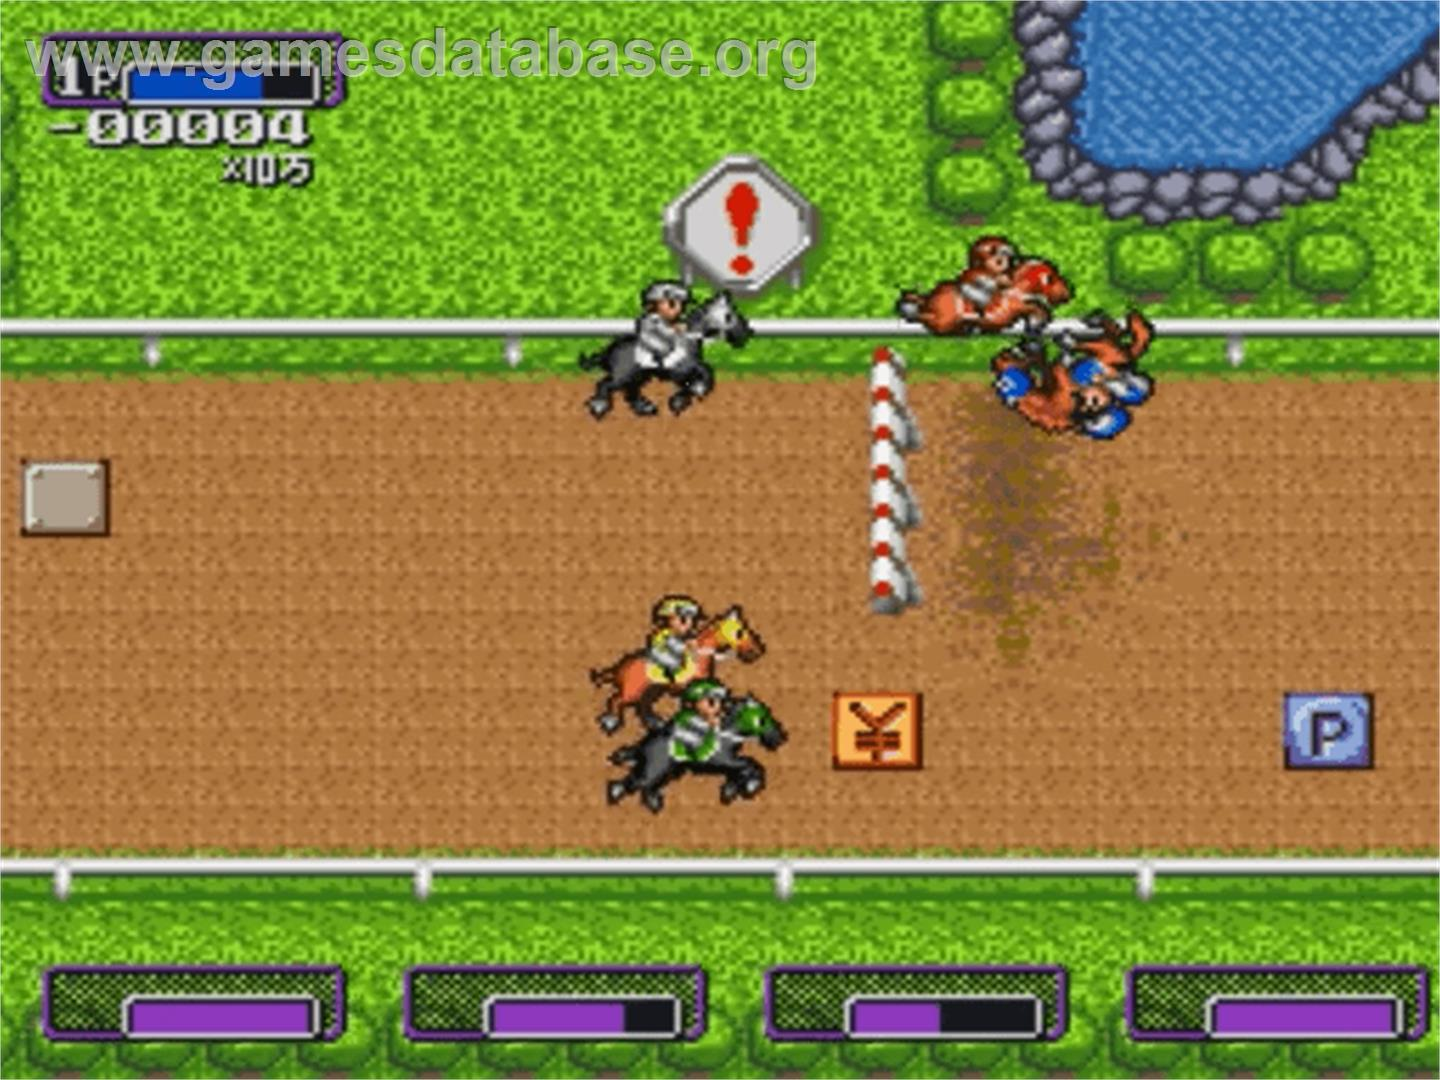 Battle Jockey - Nintendo SNES - Artwork - In Game